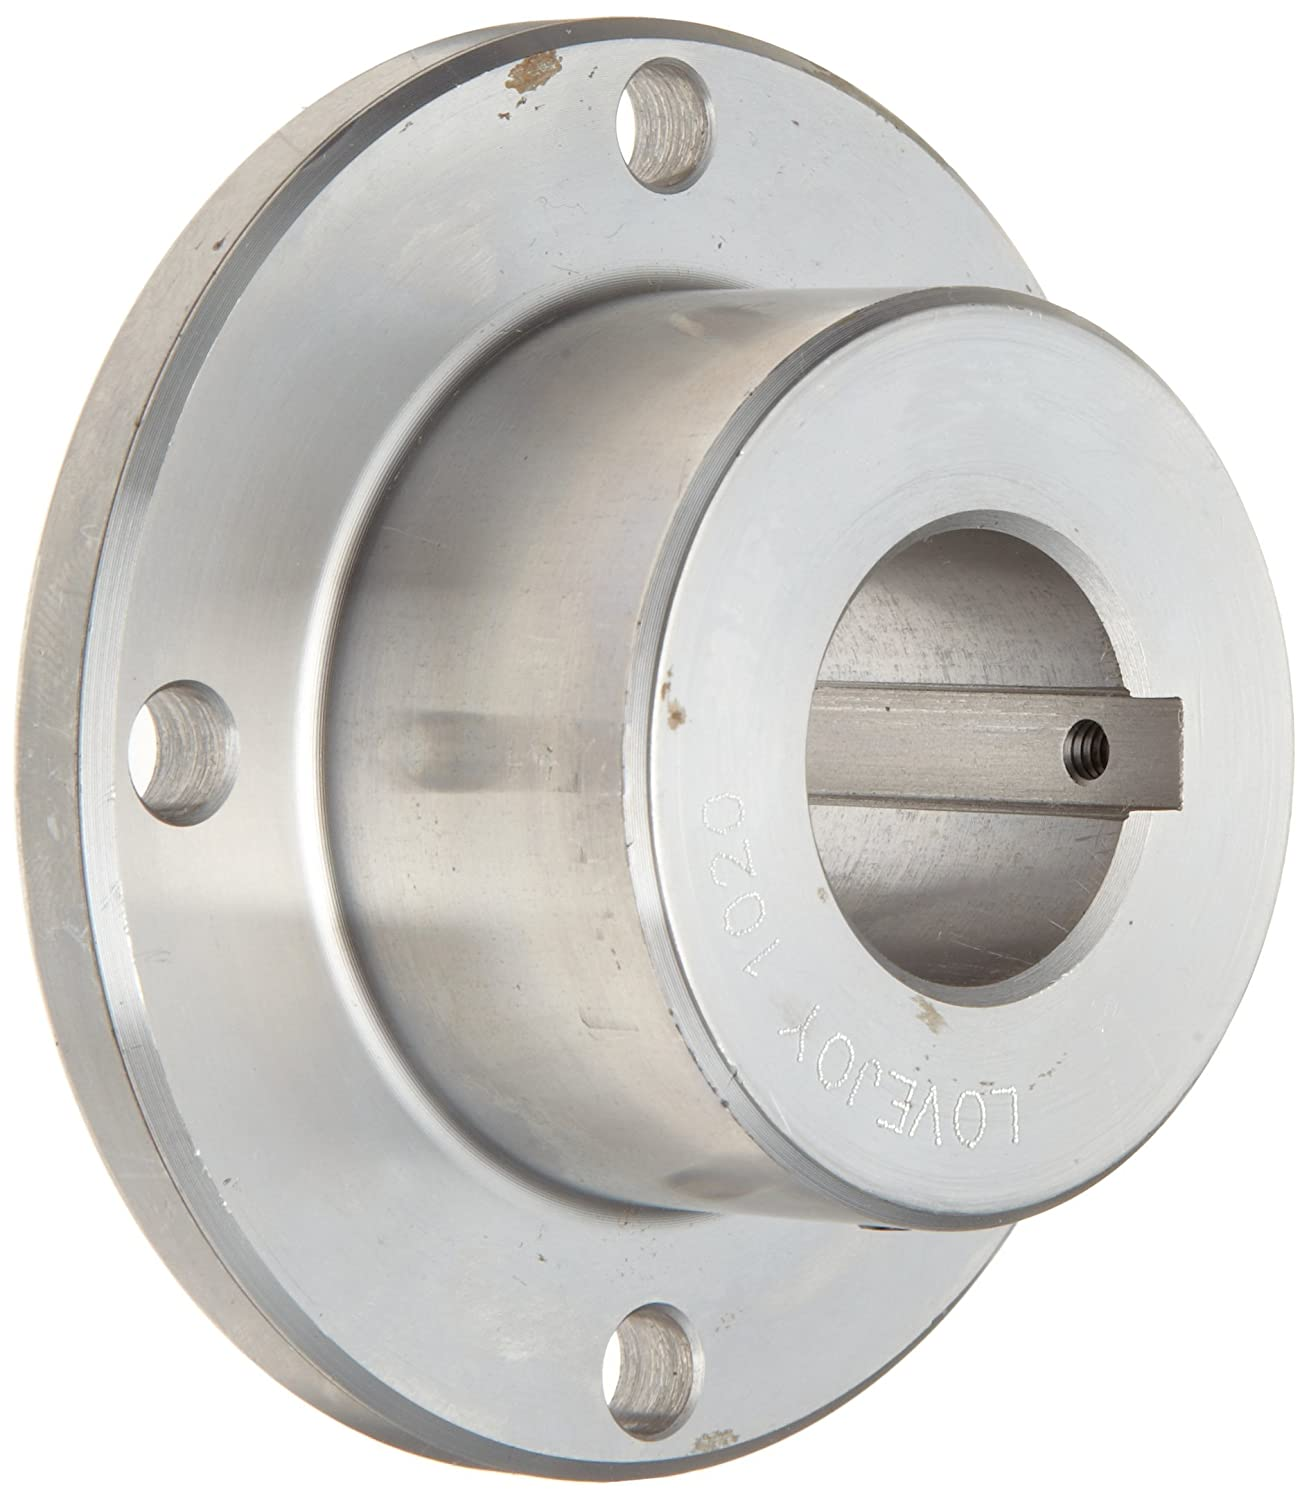 Metric 4543 ft-lb Maximum Transmissible Torque 80 mm shaft diameter x 120mm outer diameter of shaft locking device Lovejoy 1350 Series Shaft Locking Device